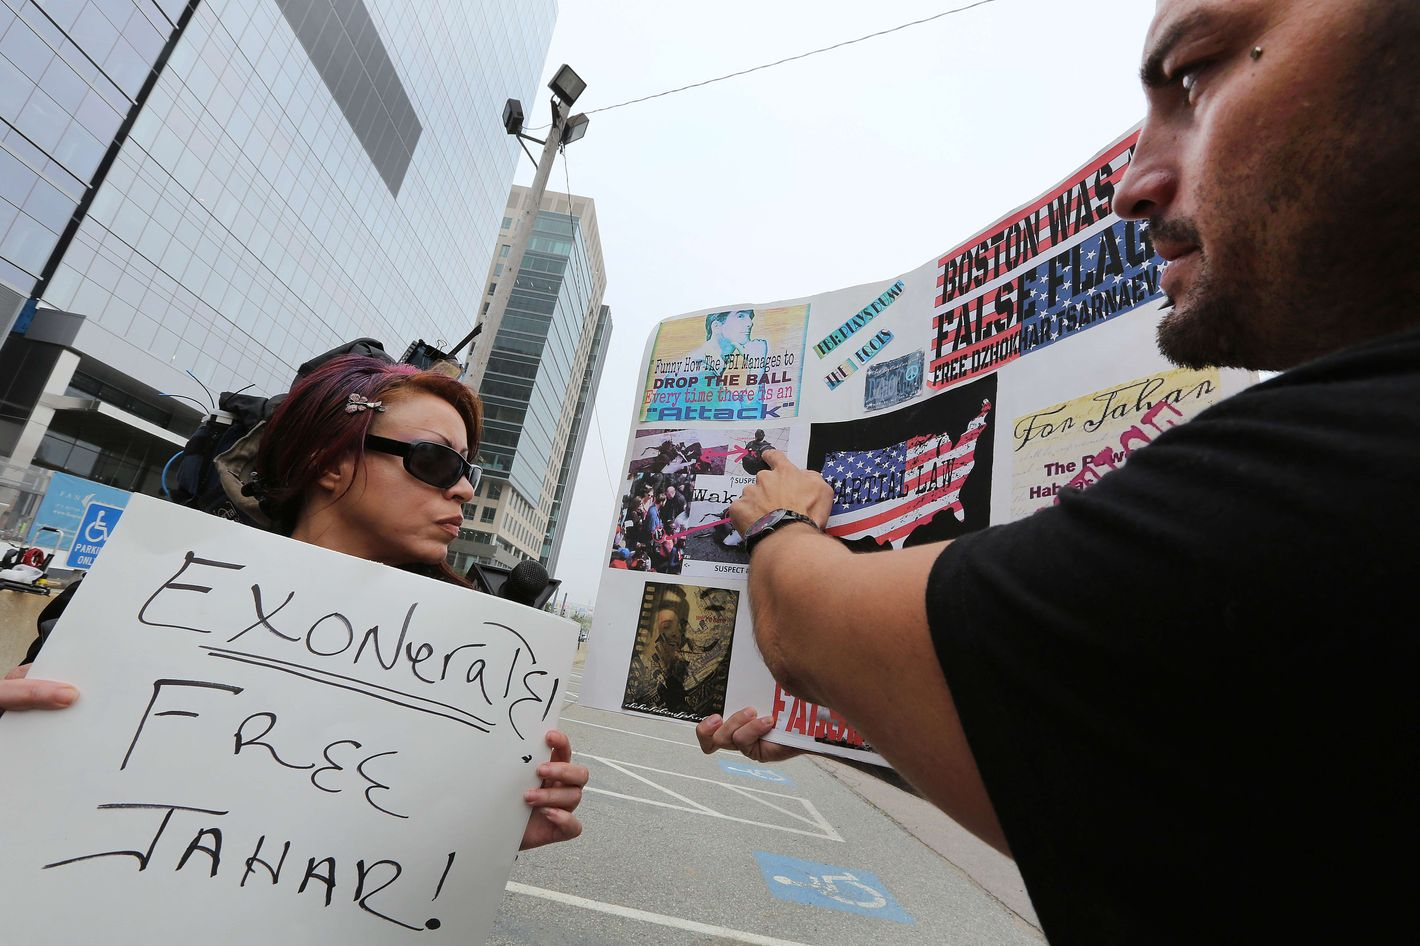 Karina Figueroa, left, of NYC, and Duke LaTouf of Las Vegas, believe in Tsarnaev's innocence.  Media and supporters of alleged Boston Marathon bombing suspect Dzhokhar Tsarnaev gather outside the John Joseph Moakley United States Courthouse on July 10, 2013, before the 19-year-old is charged.